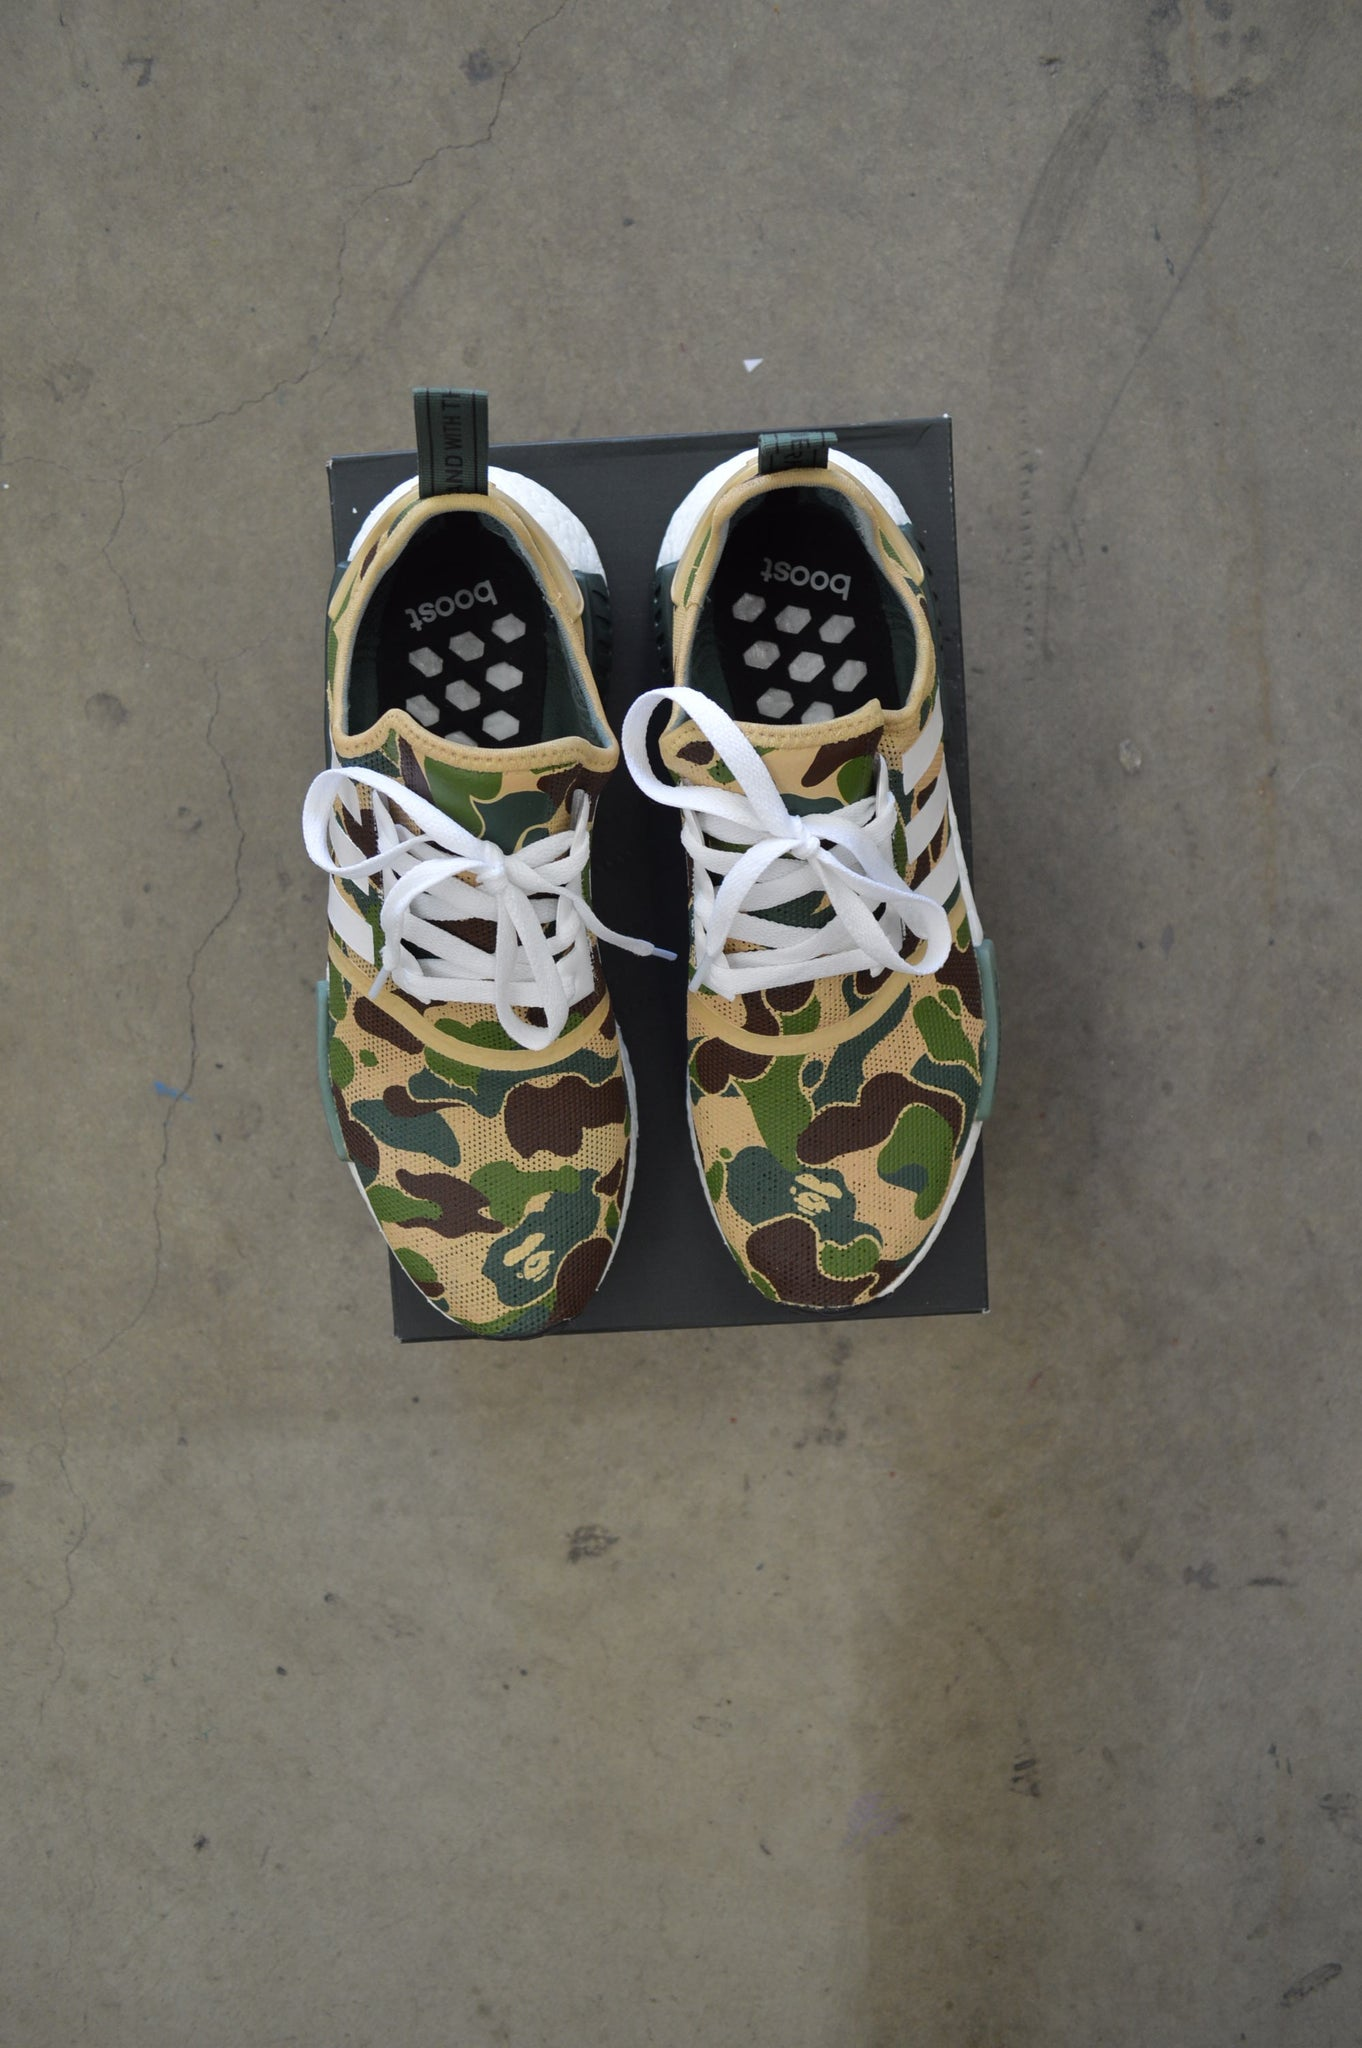 online store a1f2a 56680 BAPE Inspired Custom Painted Adidas NMD R1 ...